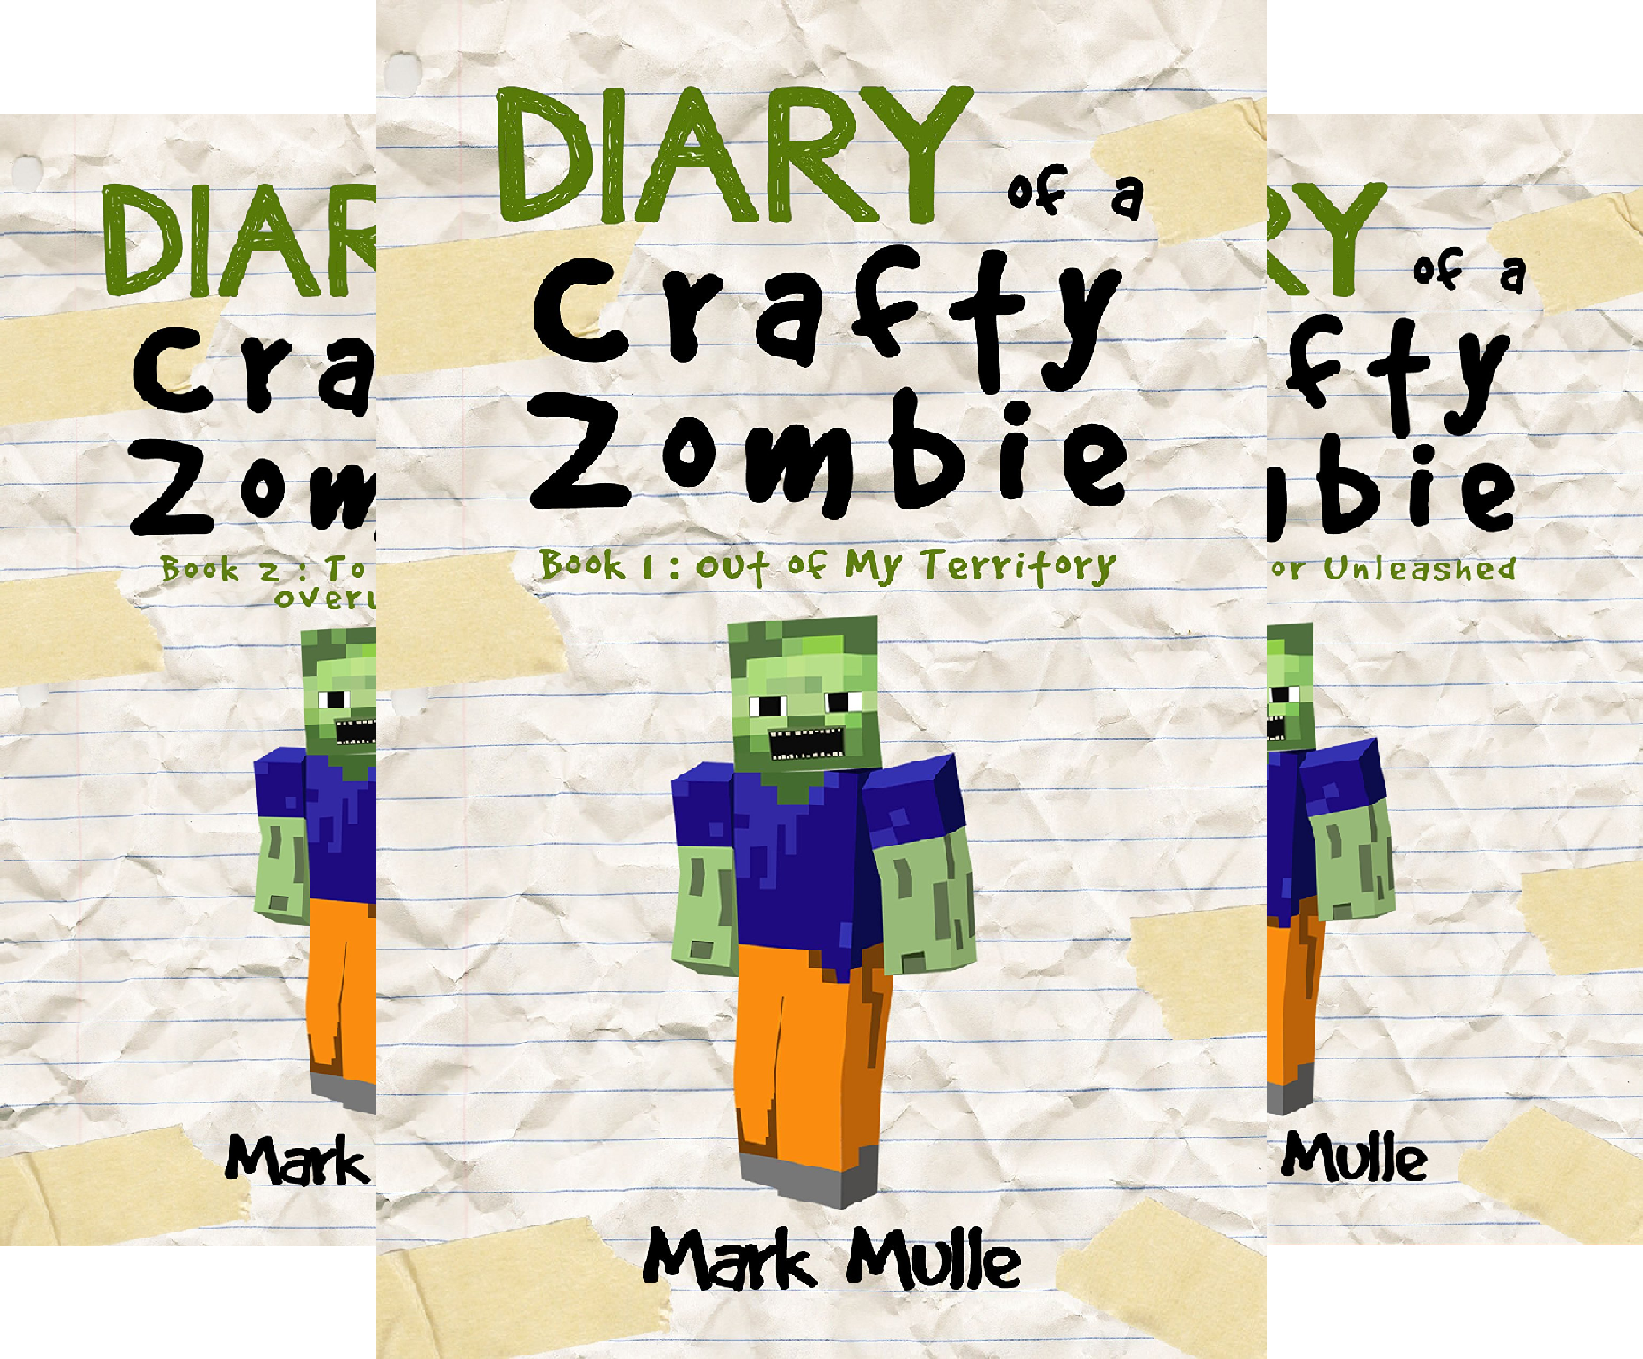 Diary of a Crafty Zombie (3 Book Series) - Fable Video-spiel